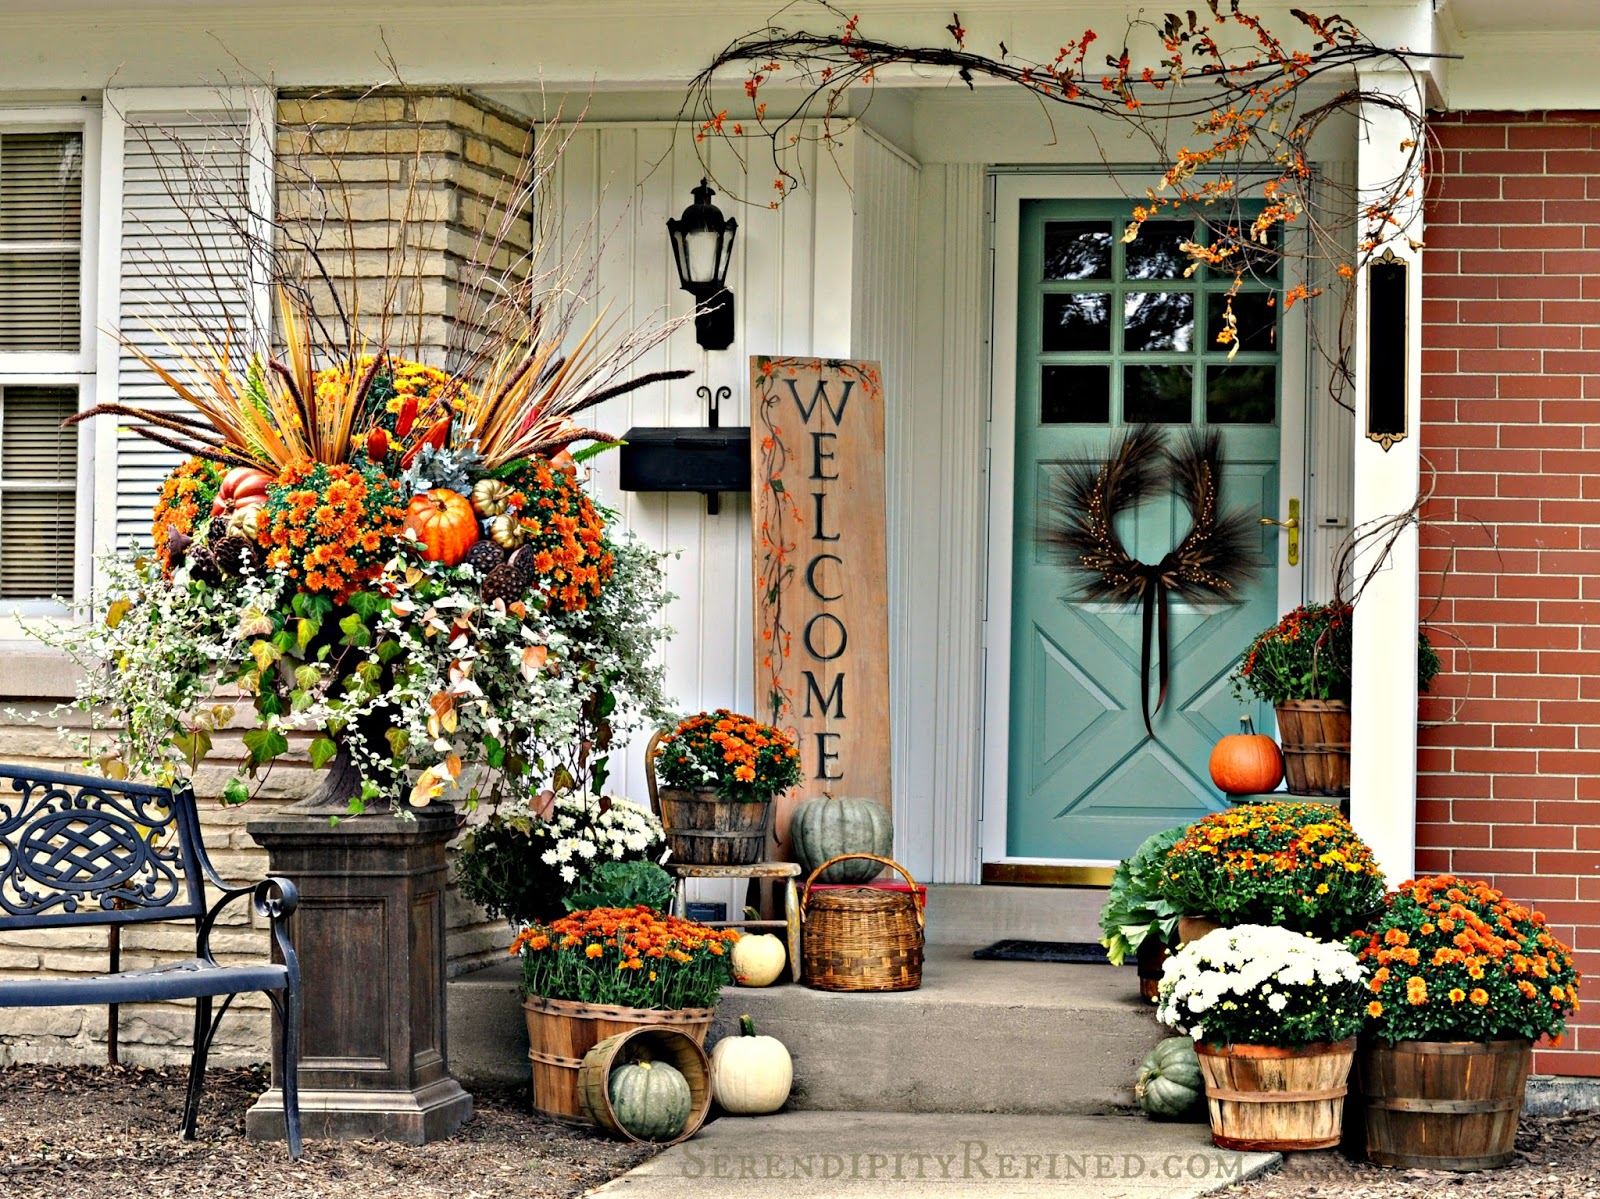 serendipity refined blog fall harvest porch decor with reclaimed wood sign. Black Bedroom Furniture Sets. Home Design Ideas